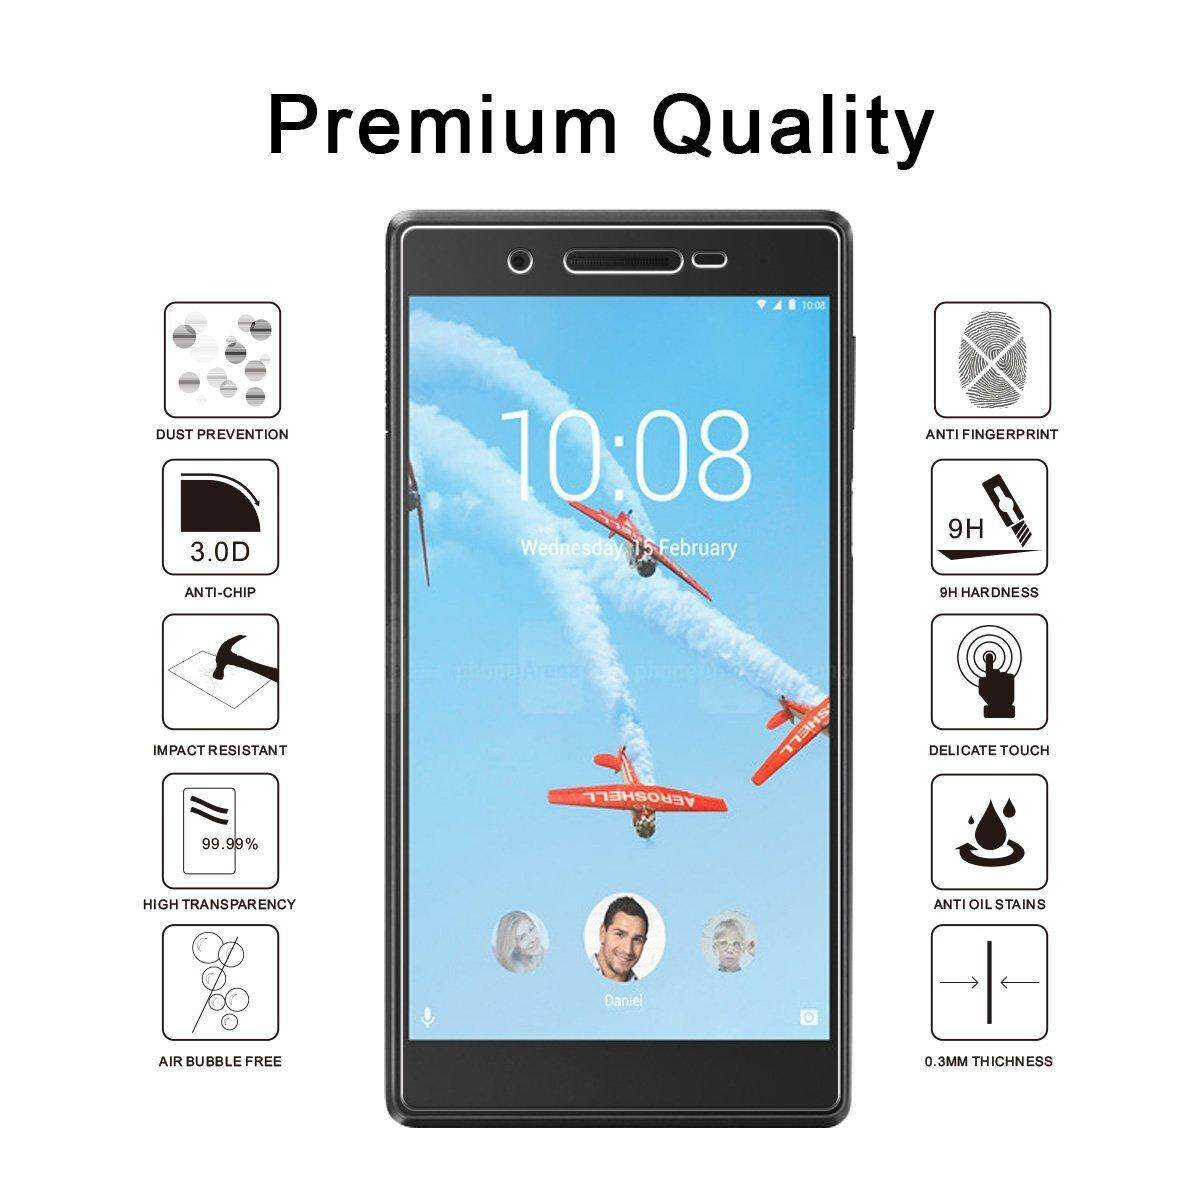 Lenovo Products Accessories For The Best Price In Malaysia Touchscreen A2020 Vibe C Ts Tempered Glass Tab 7 Essential Tb7304